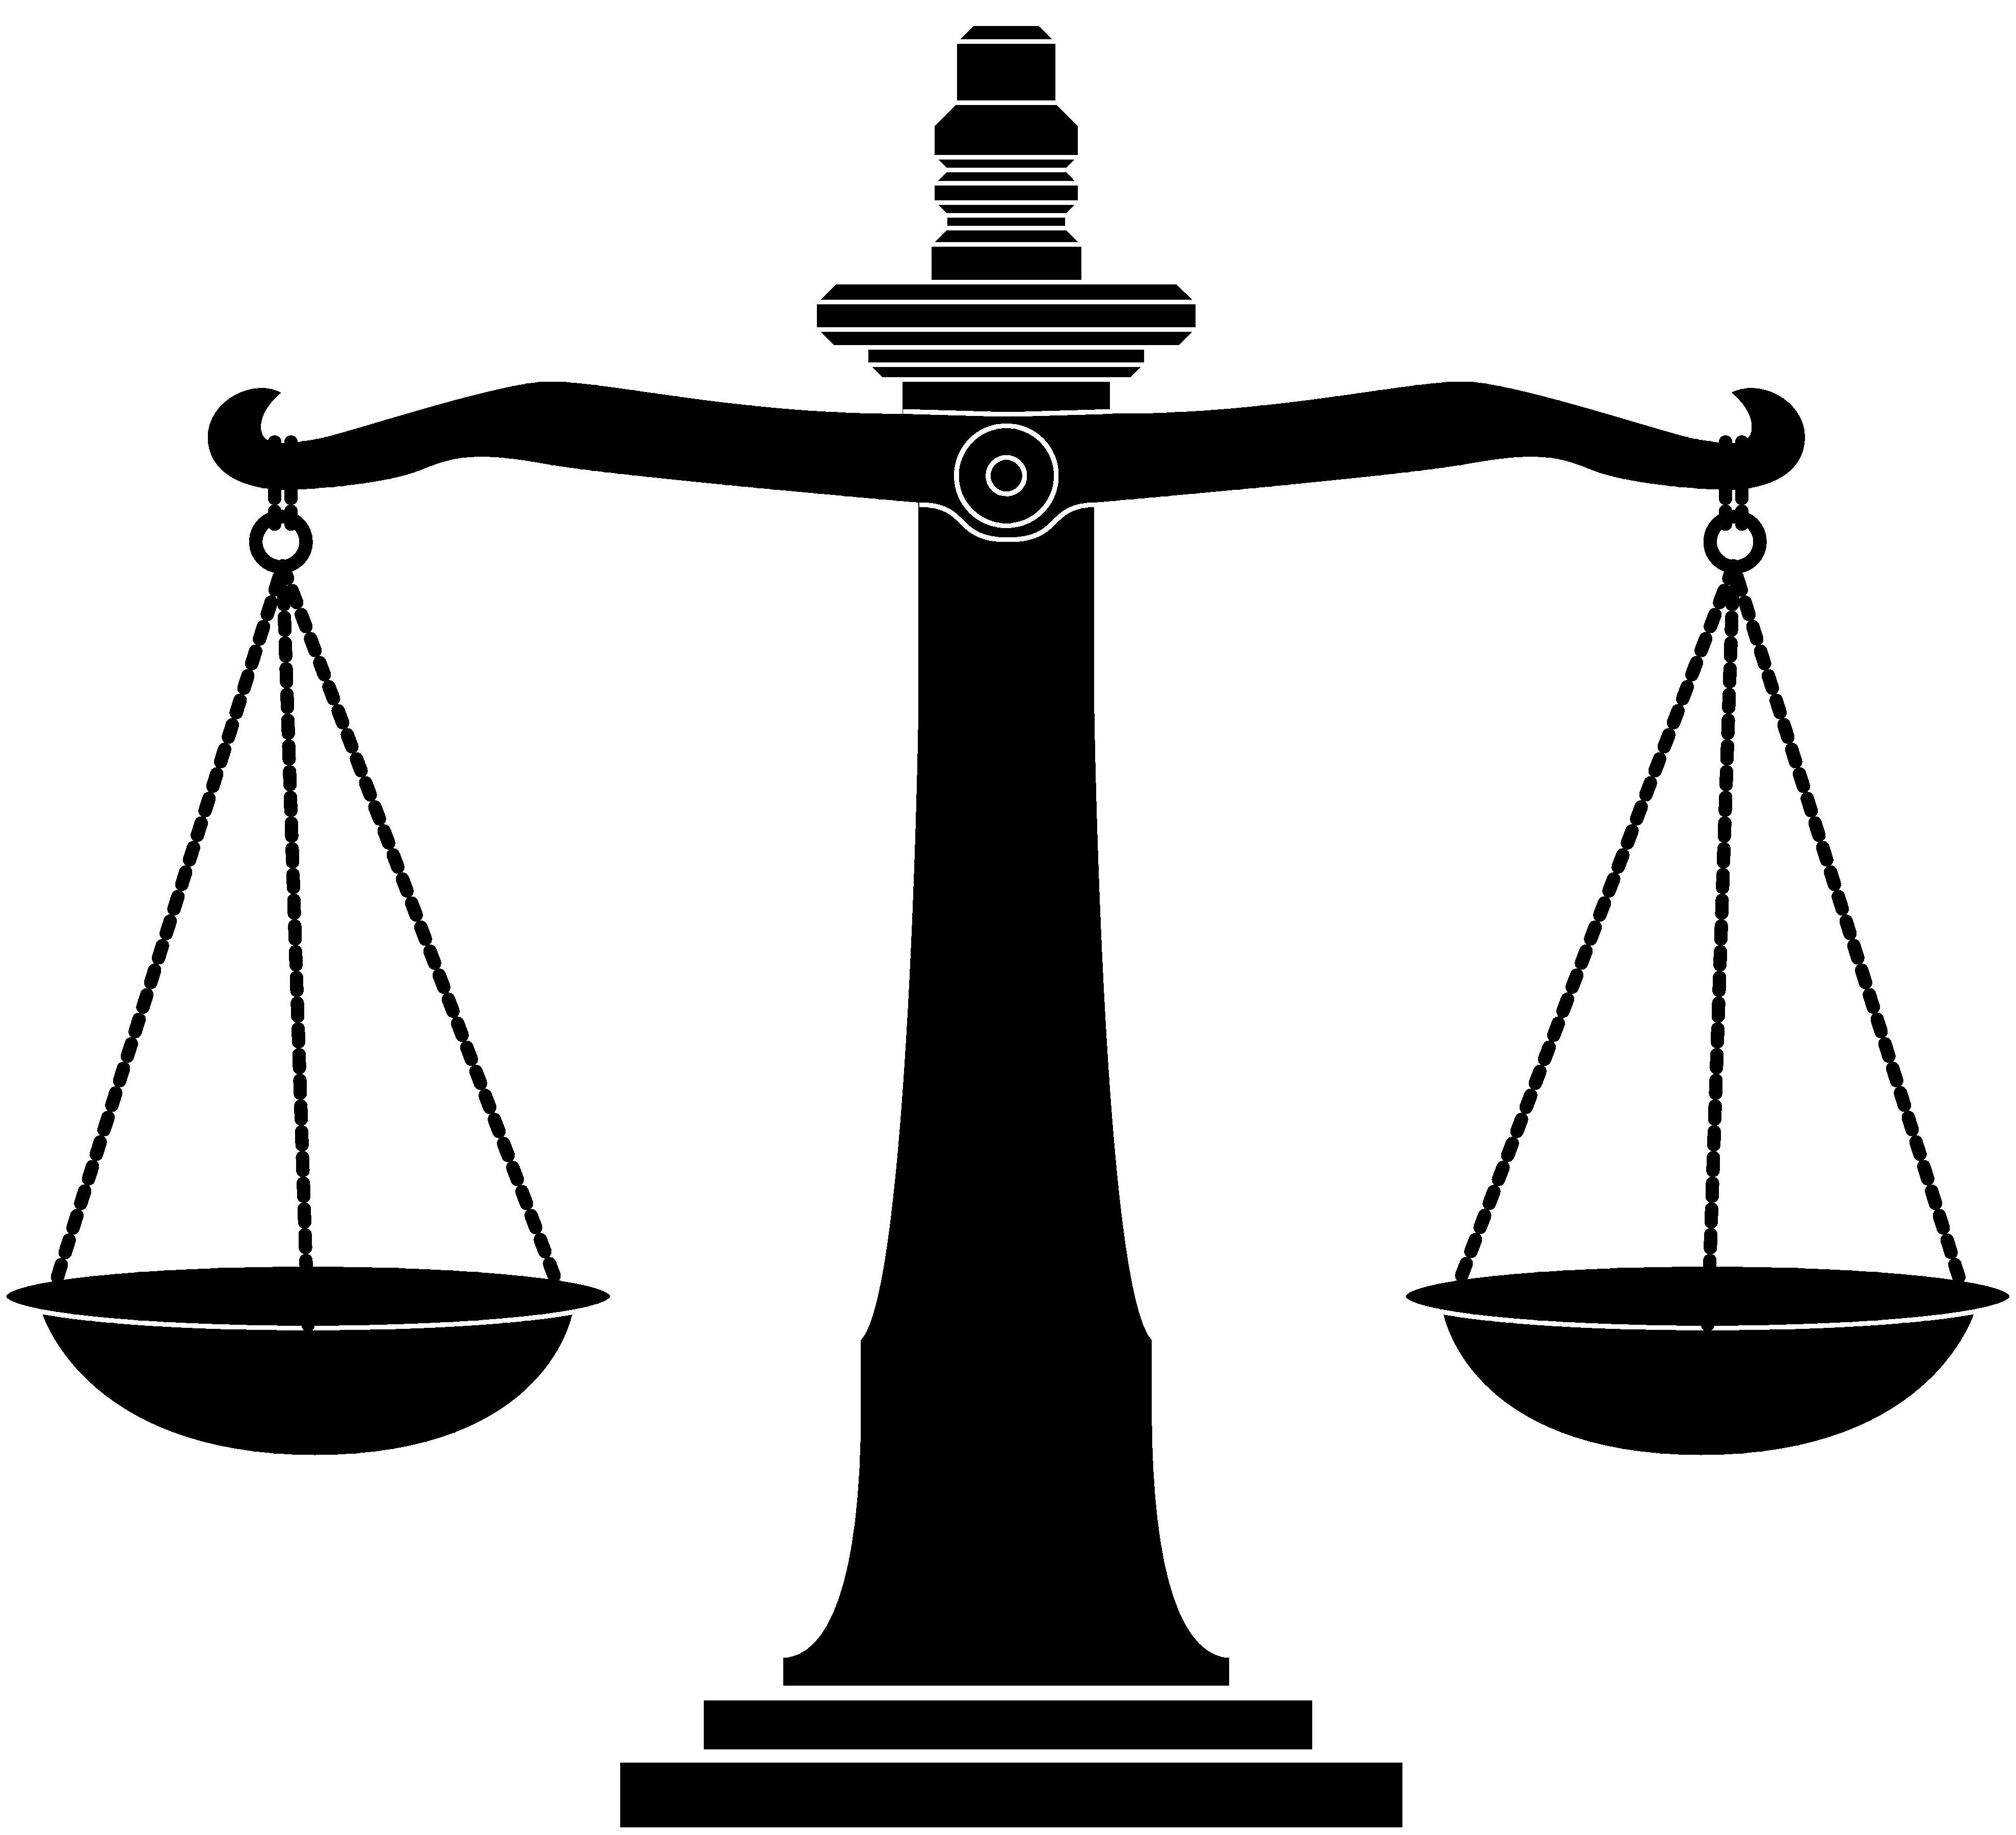 Justice clipart justice symbol. Free download best on